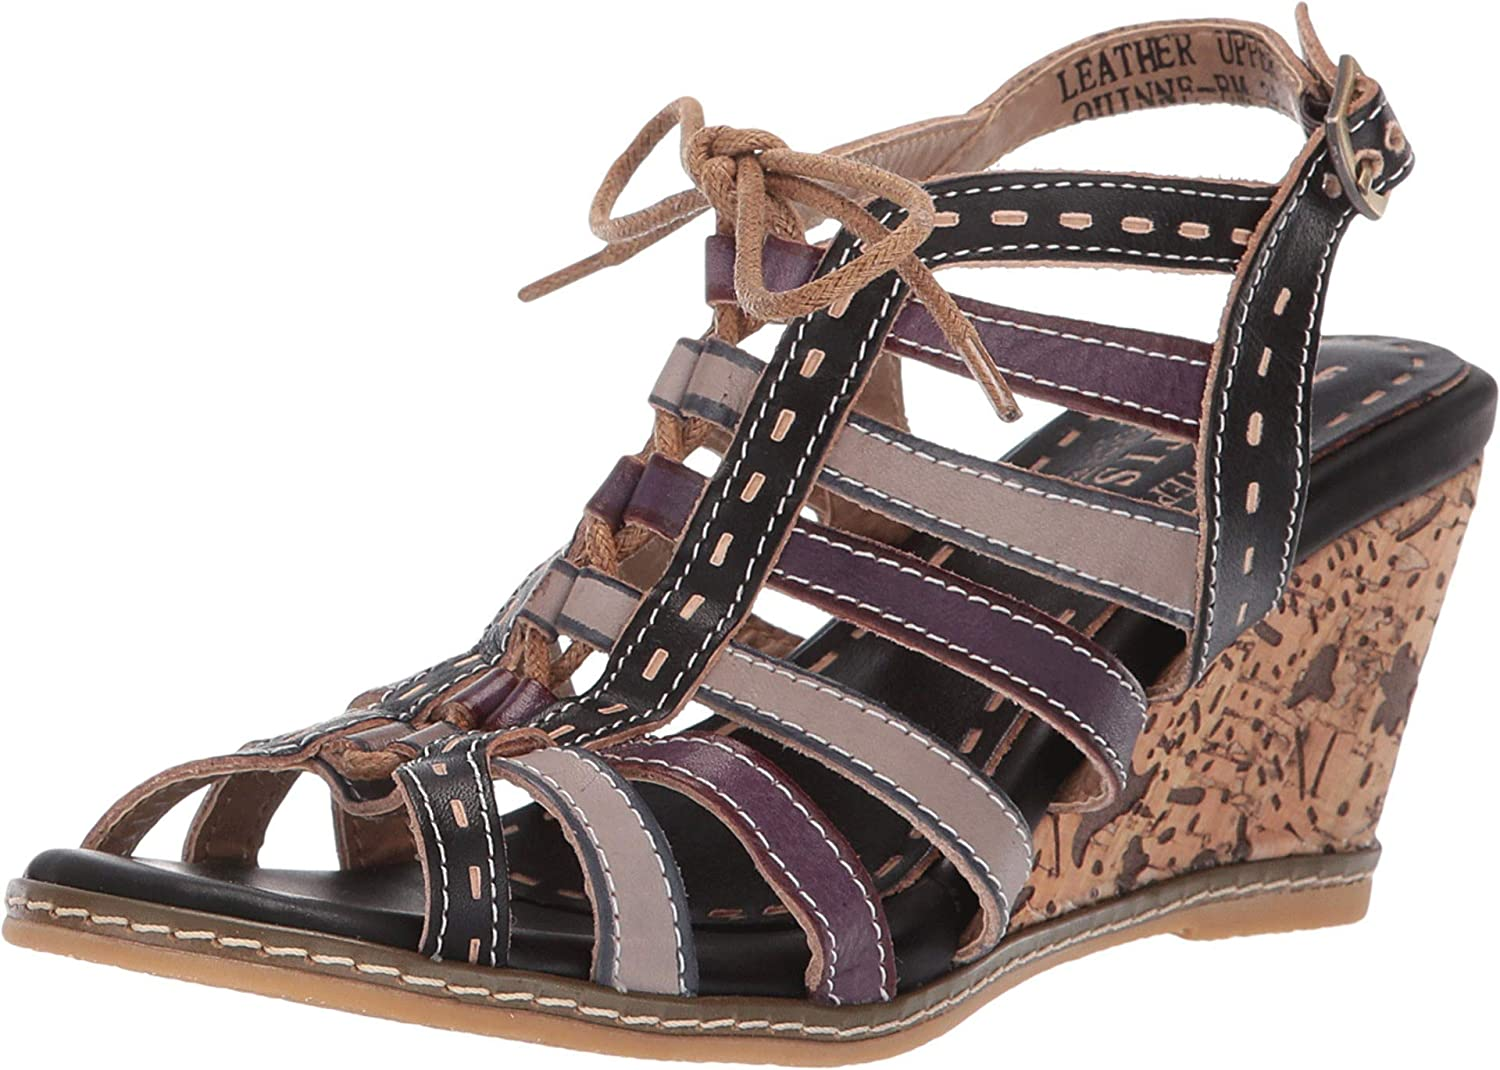 Spring Quantity limited Step Spring new work one after another L'Artiste Women's Sandal Quinne Wedge